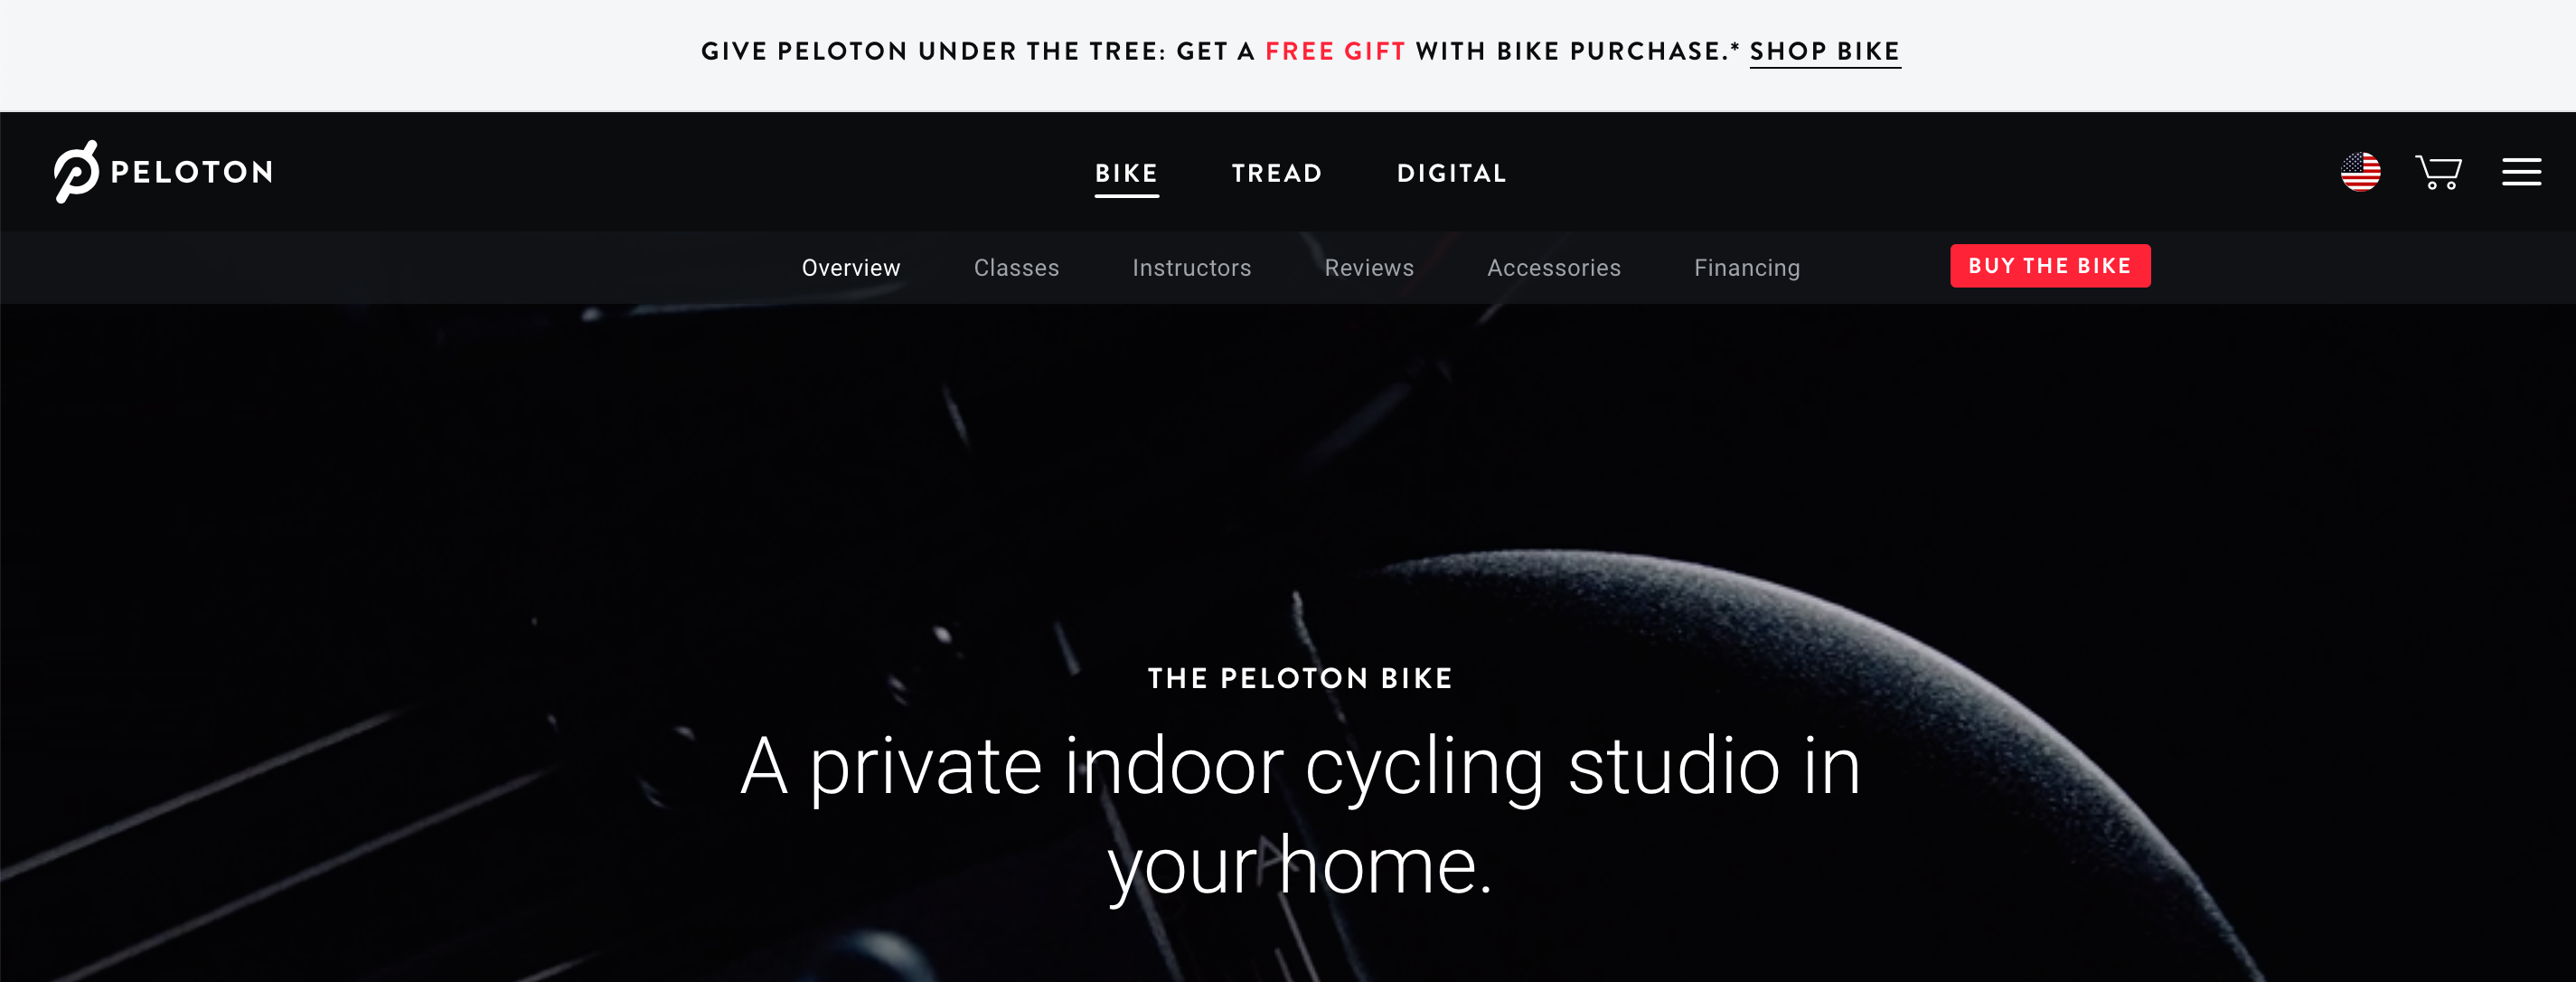 At-Home Indoor Cycling Apps Compared - Becky Searls - Medium